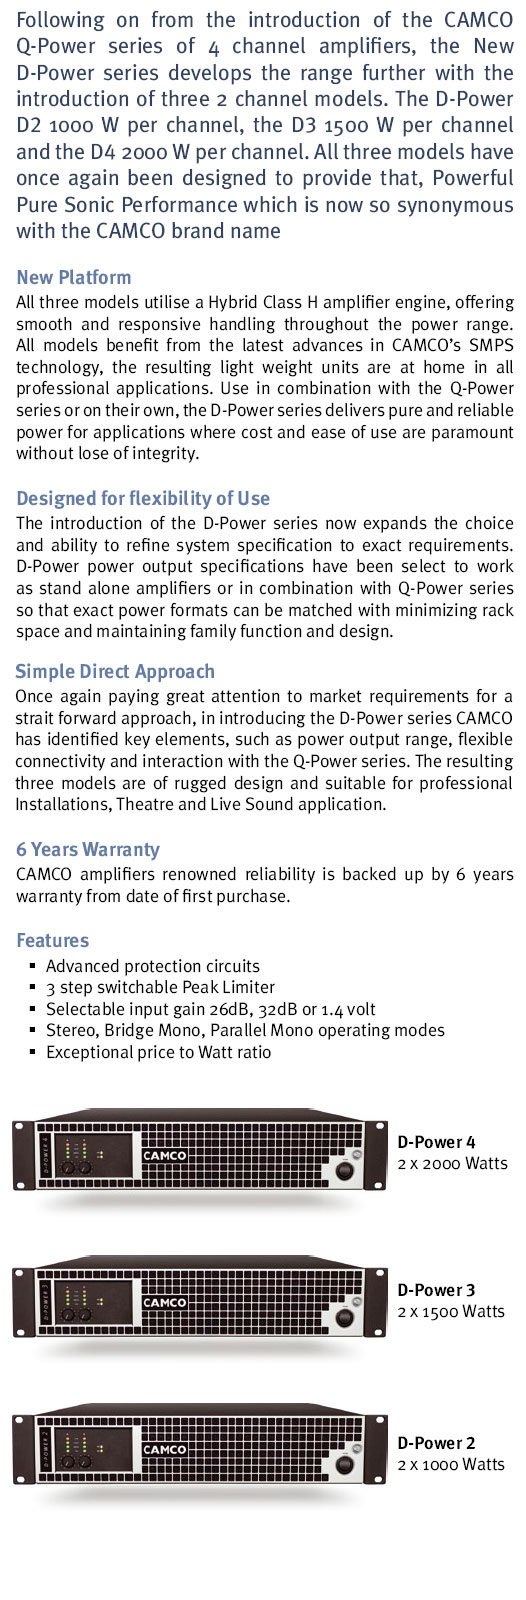 Camco D Power 3